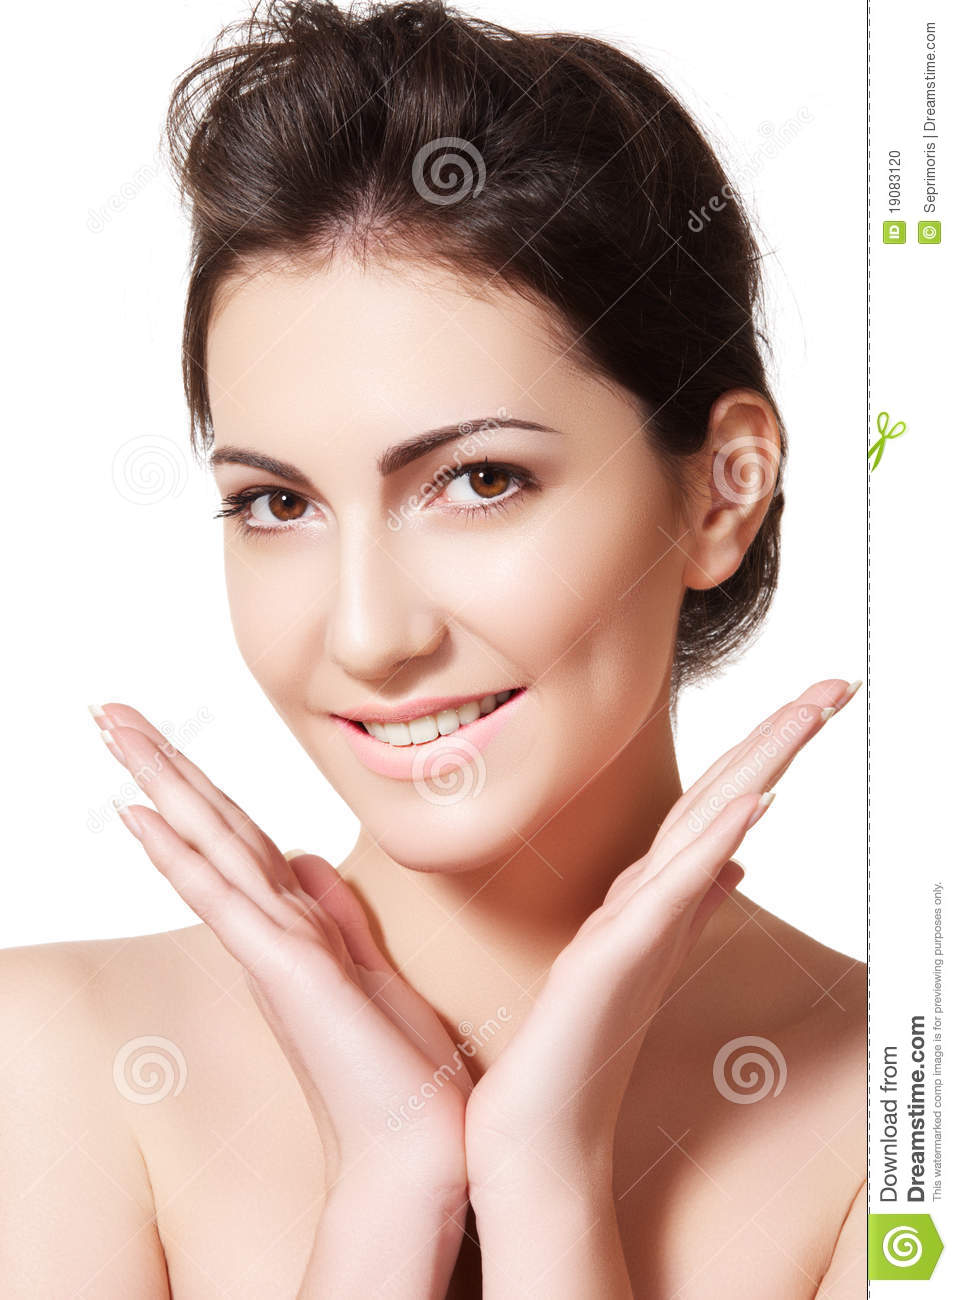 Wellness & skincare. Happy woman with clean skin